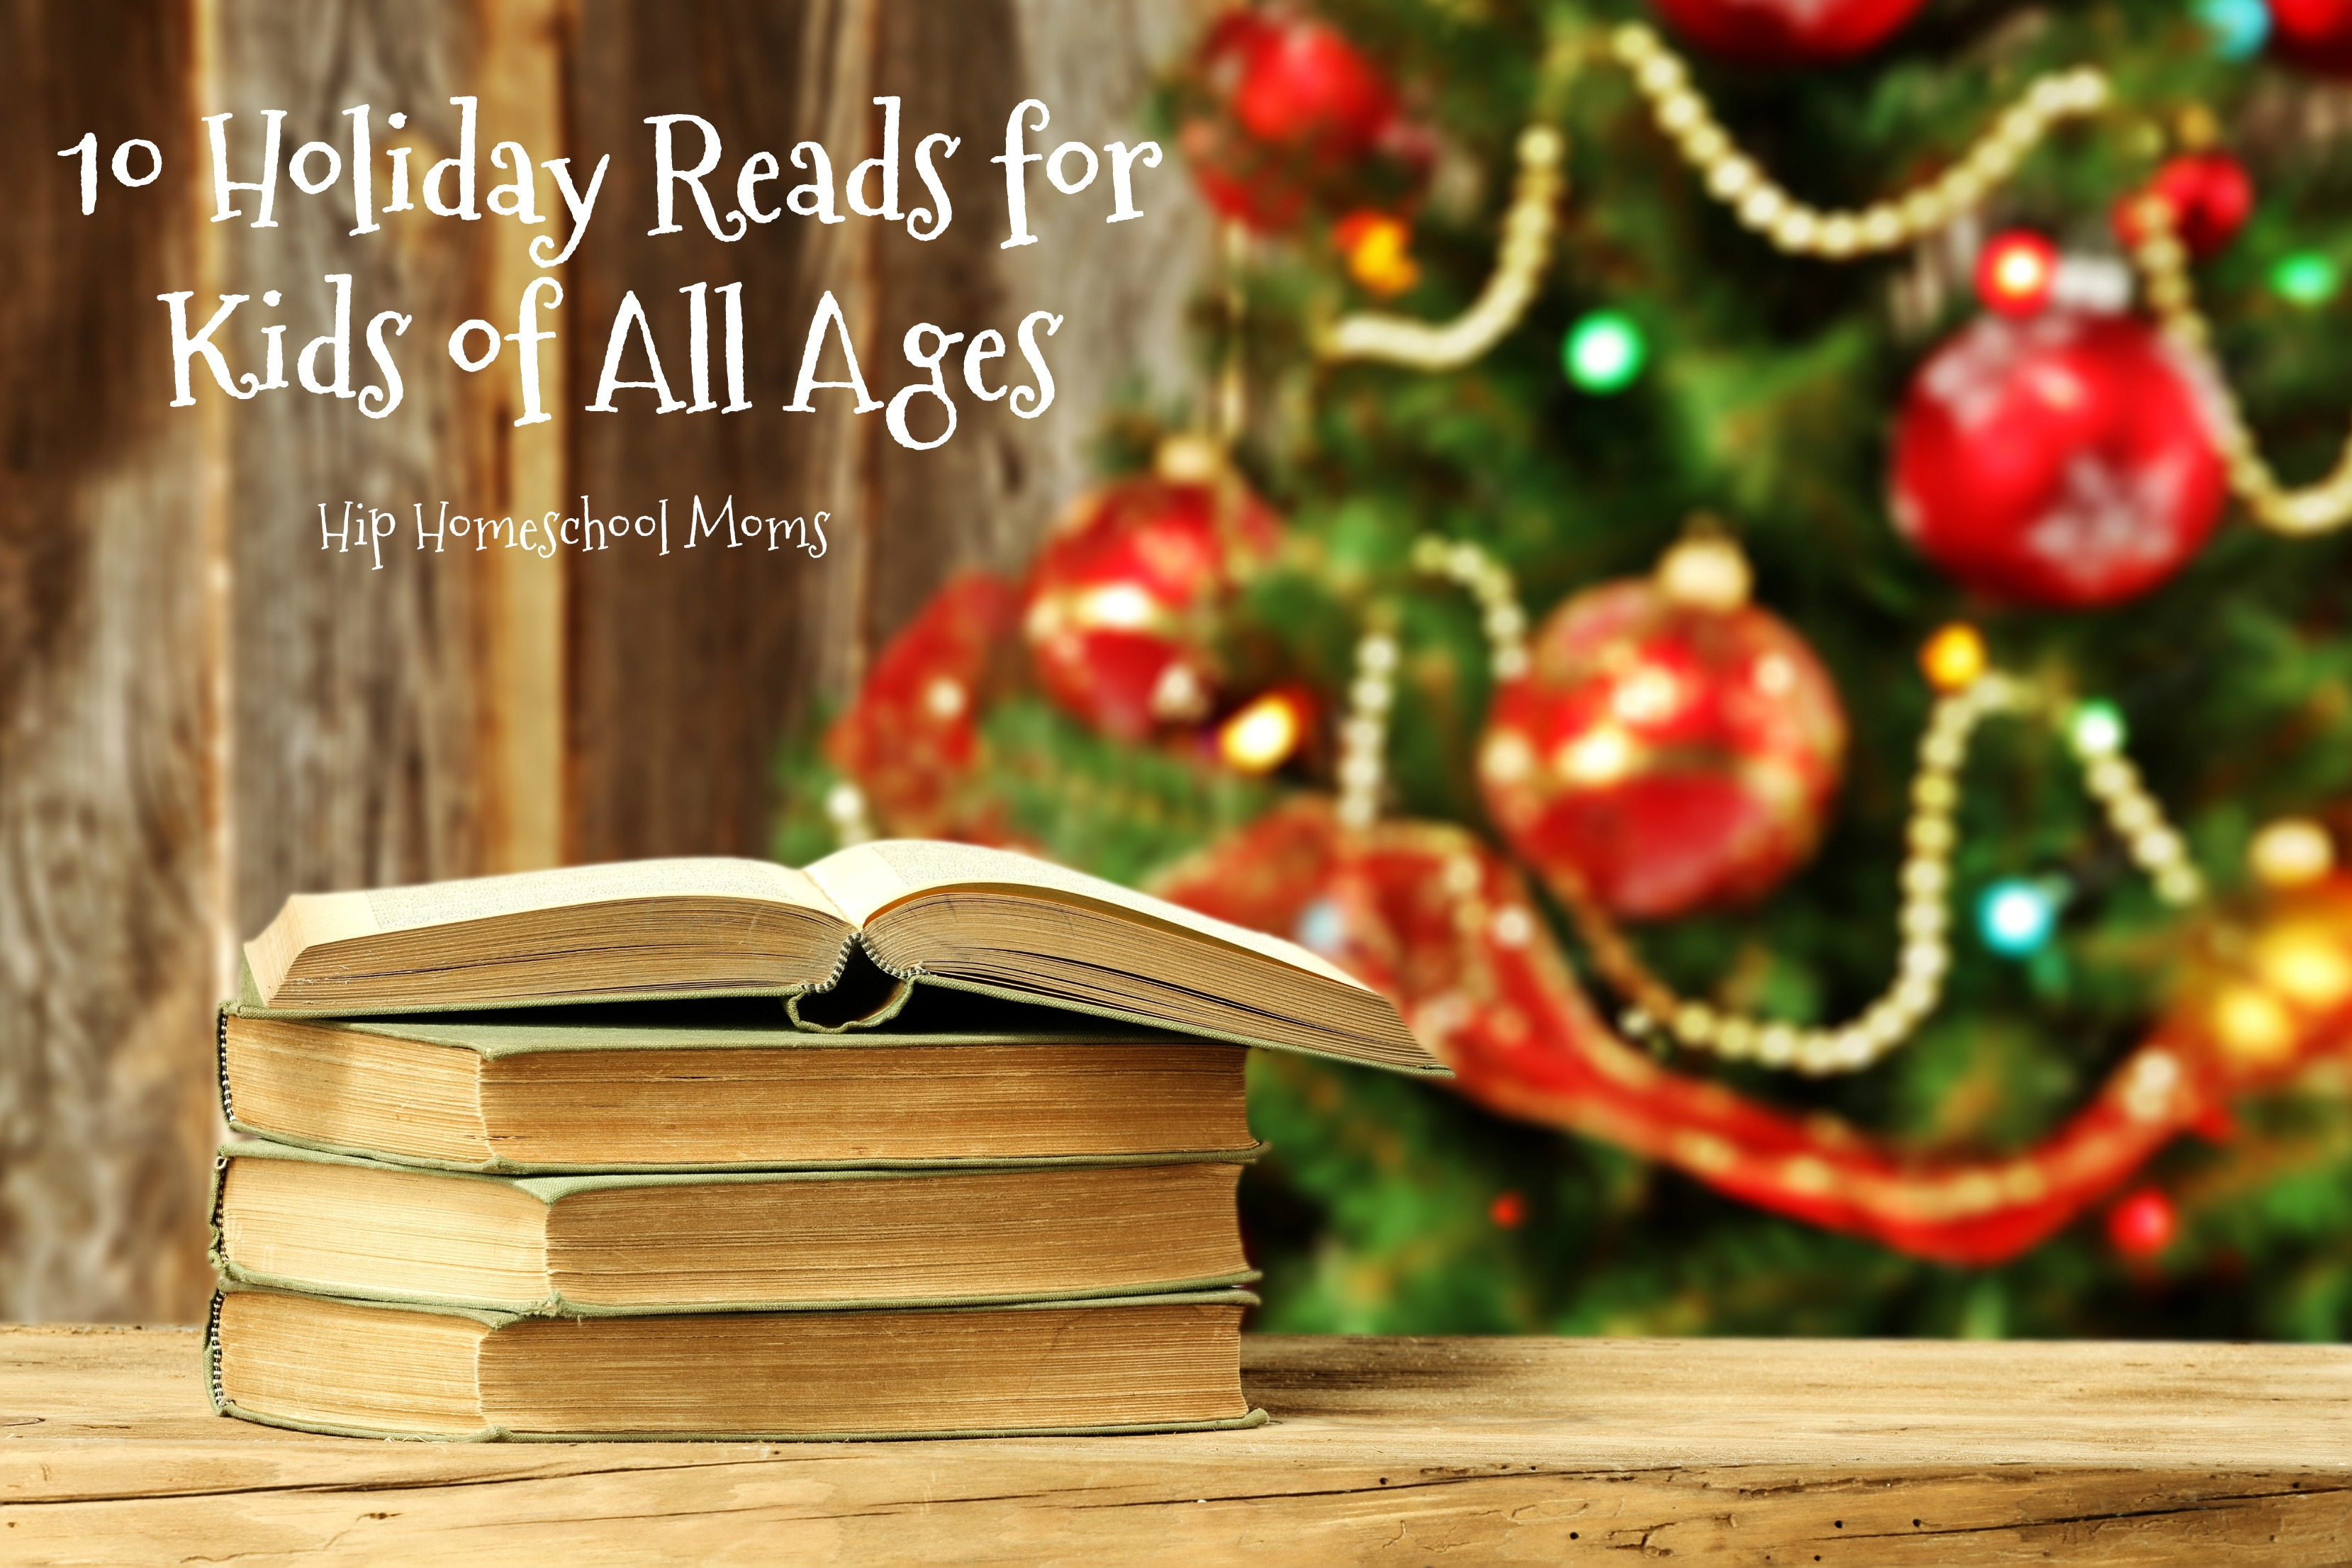 10 Holiday Reads for Kids of All Ages |Hip Homeschool Moms